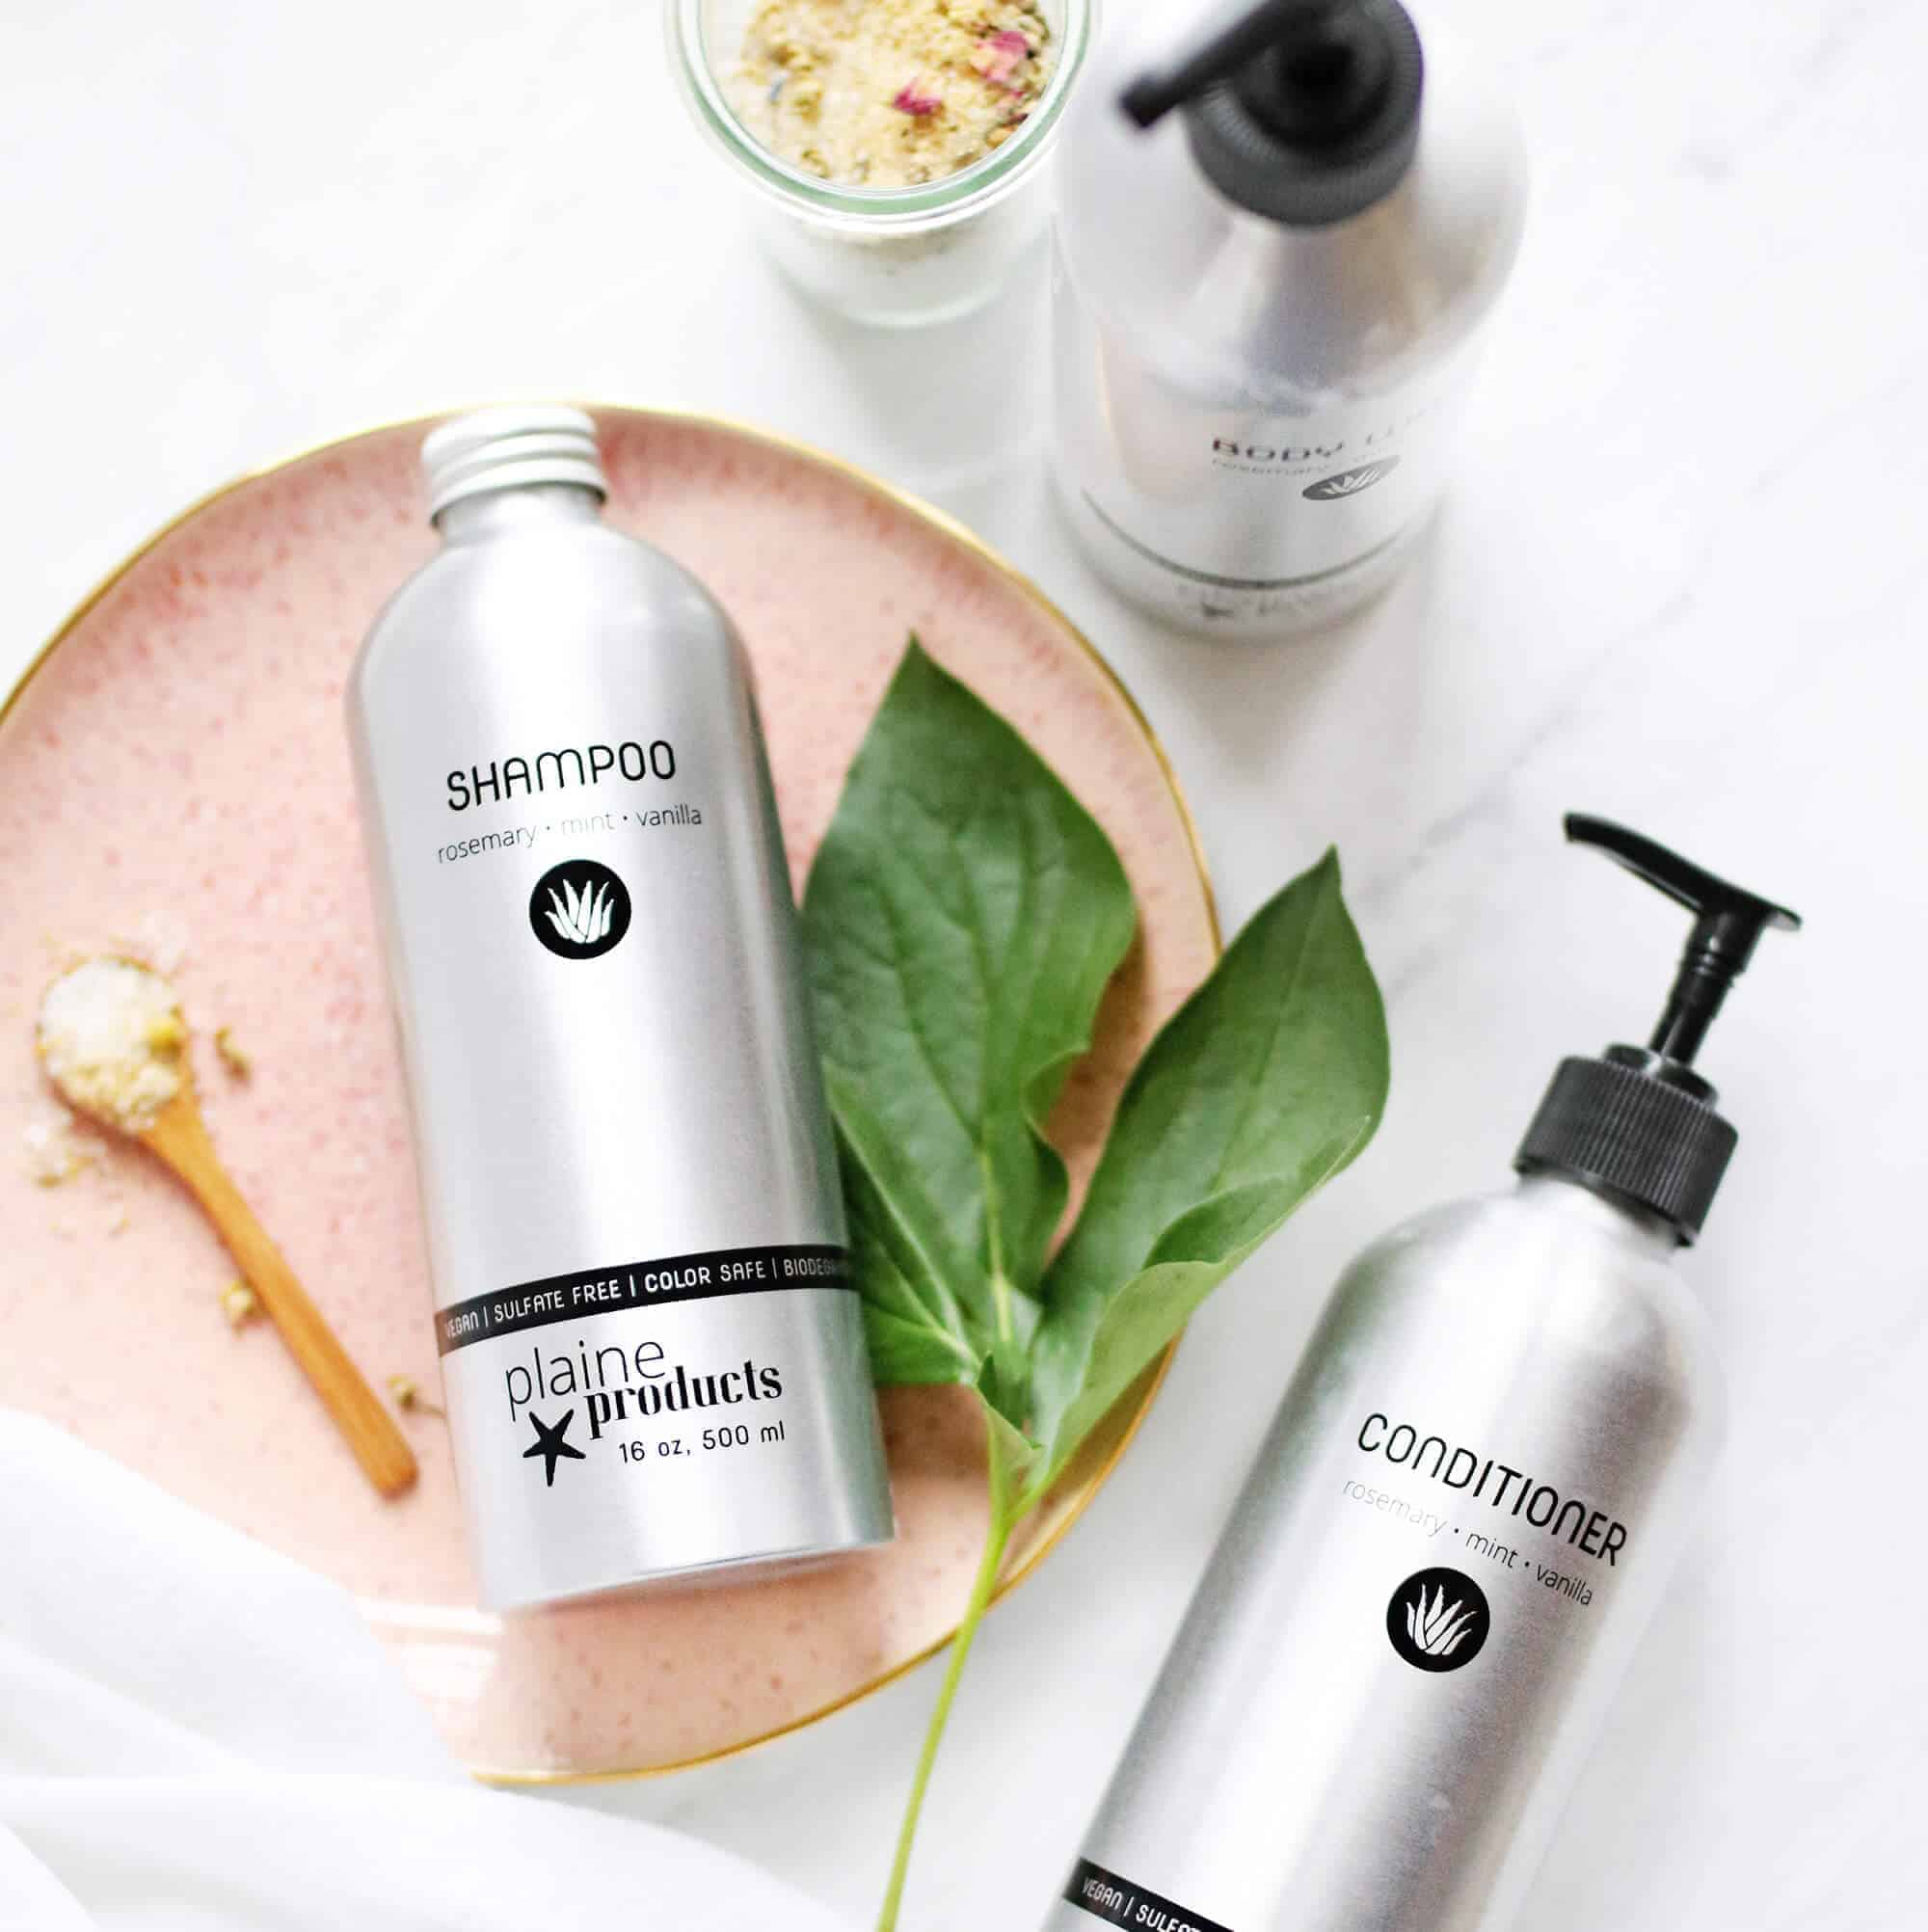 Chemical Free Products, Natural Ingredients